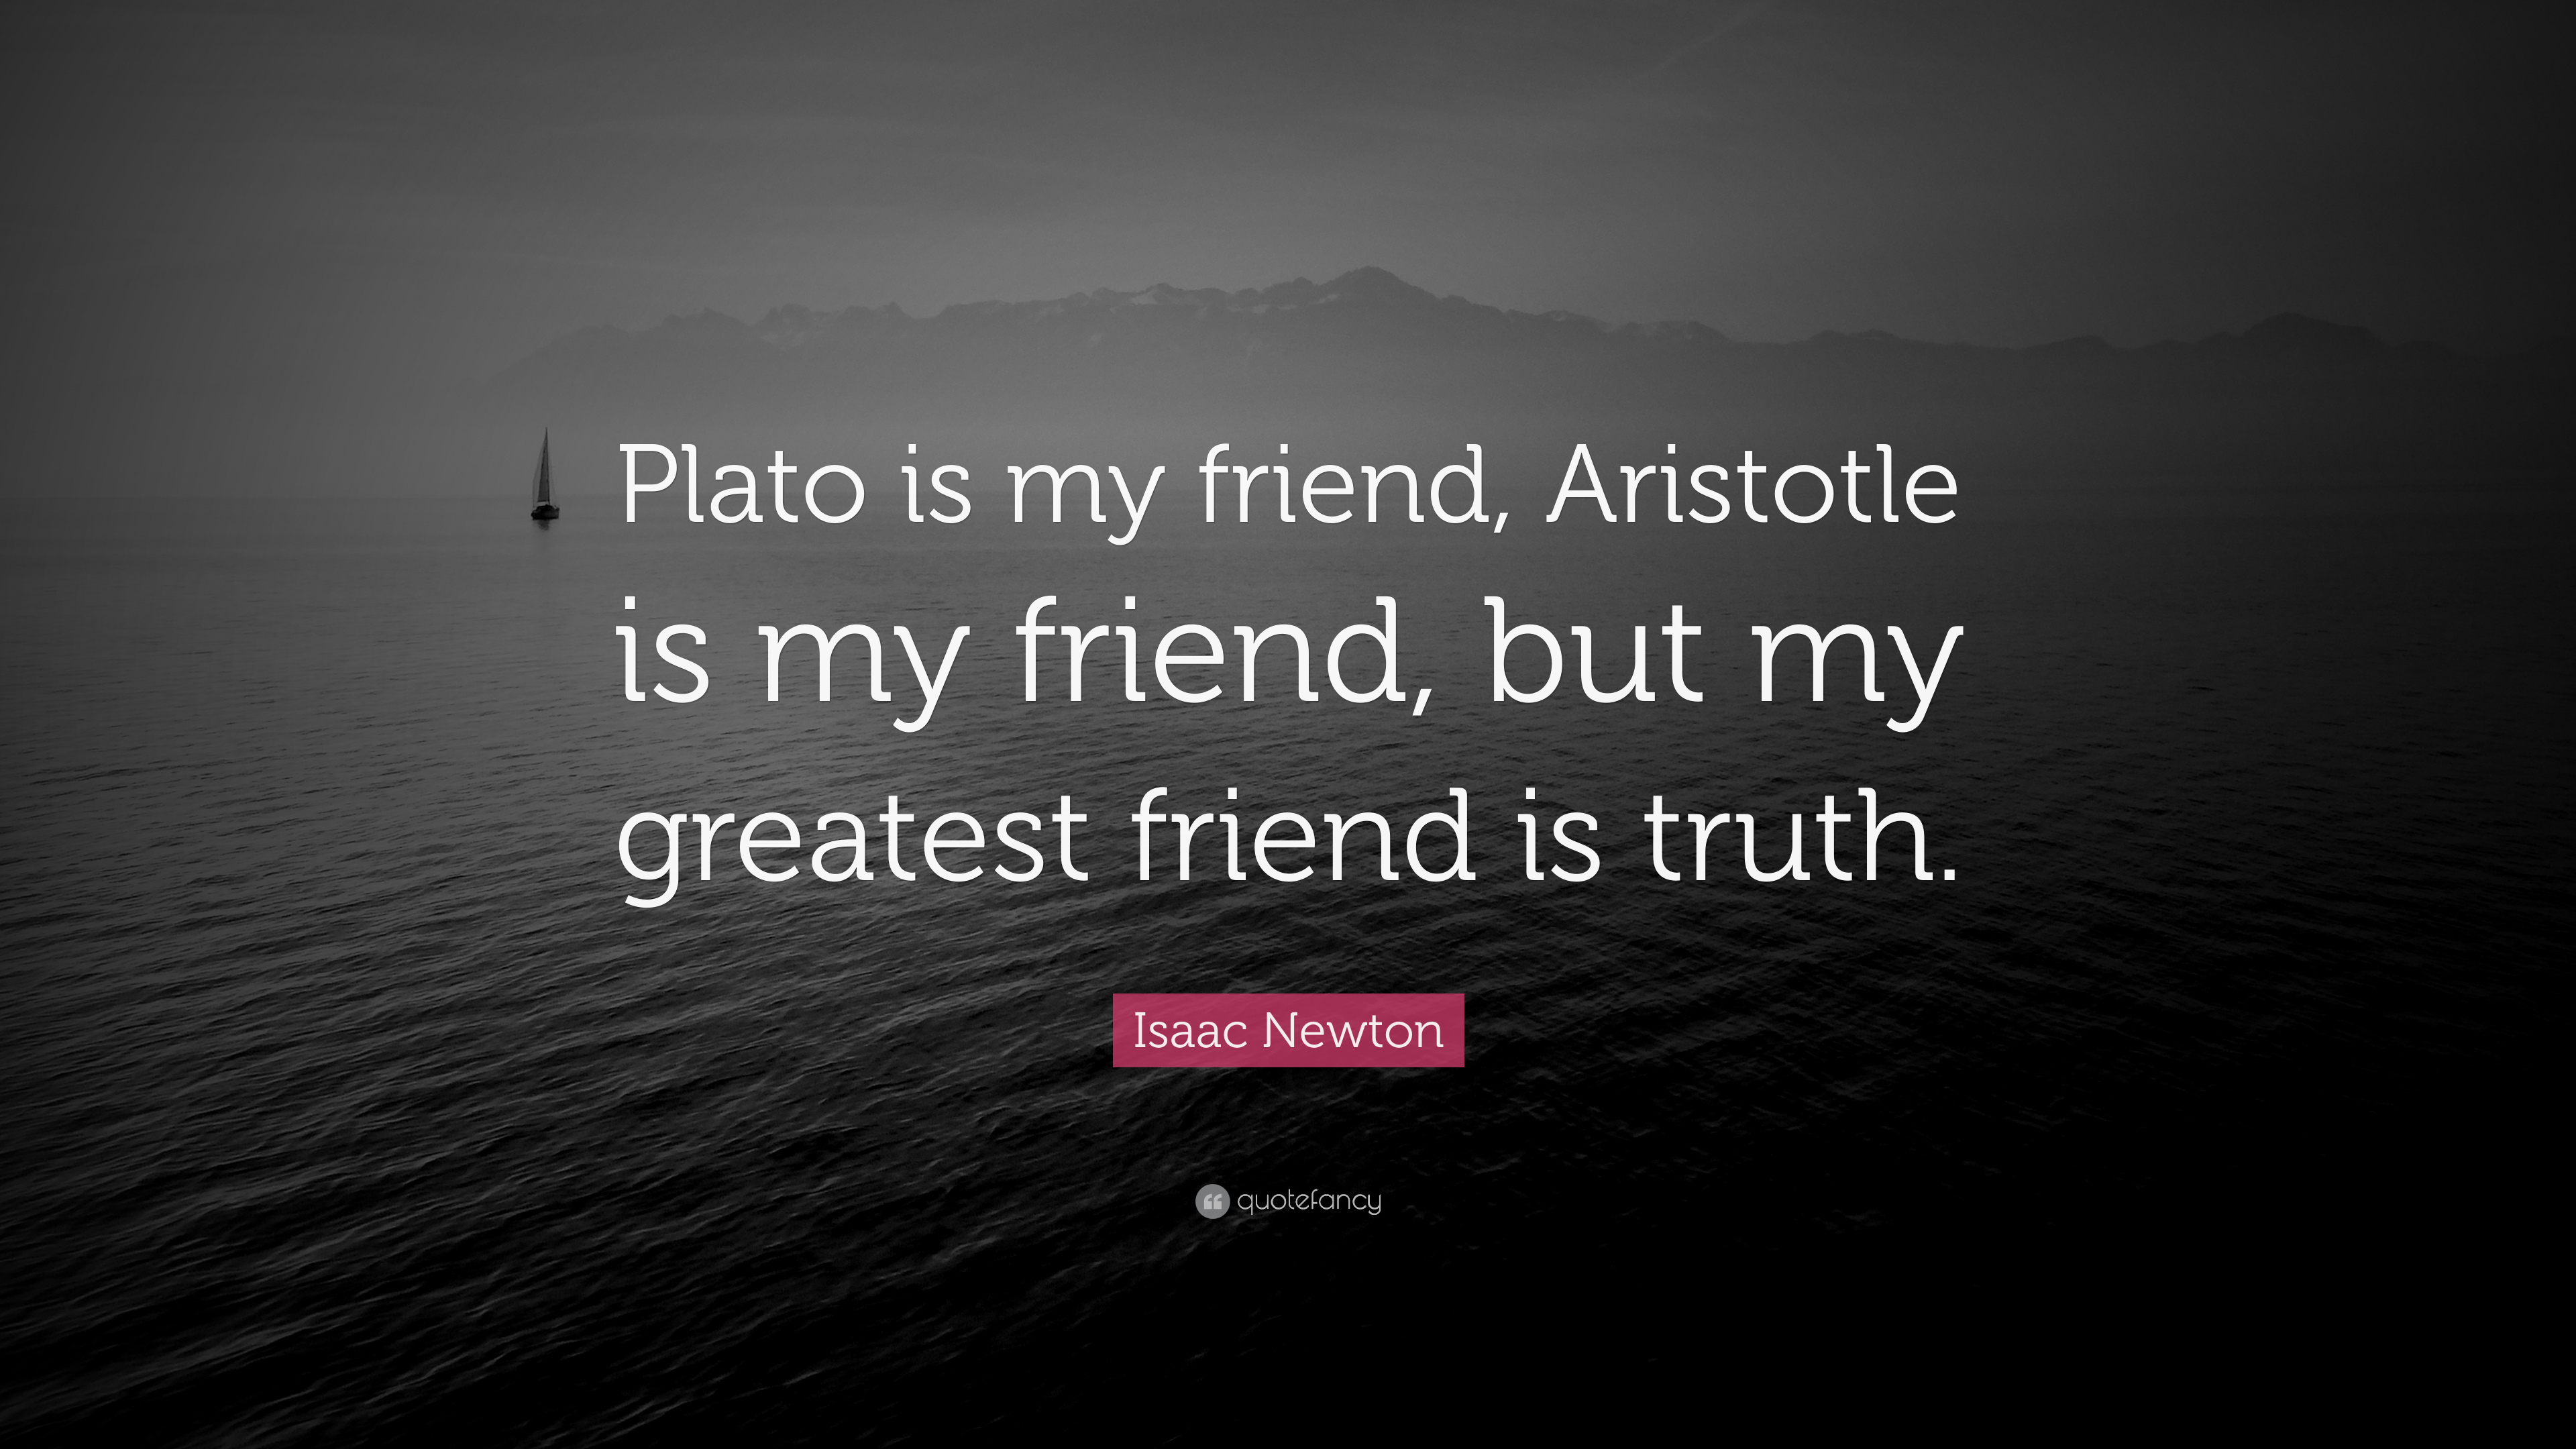 Isaac Newton Quote: Plato is my friend, Aristotle is my